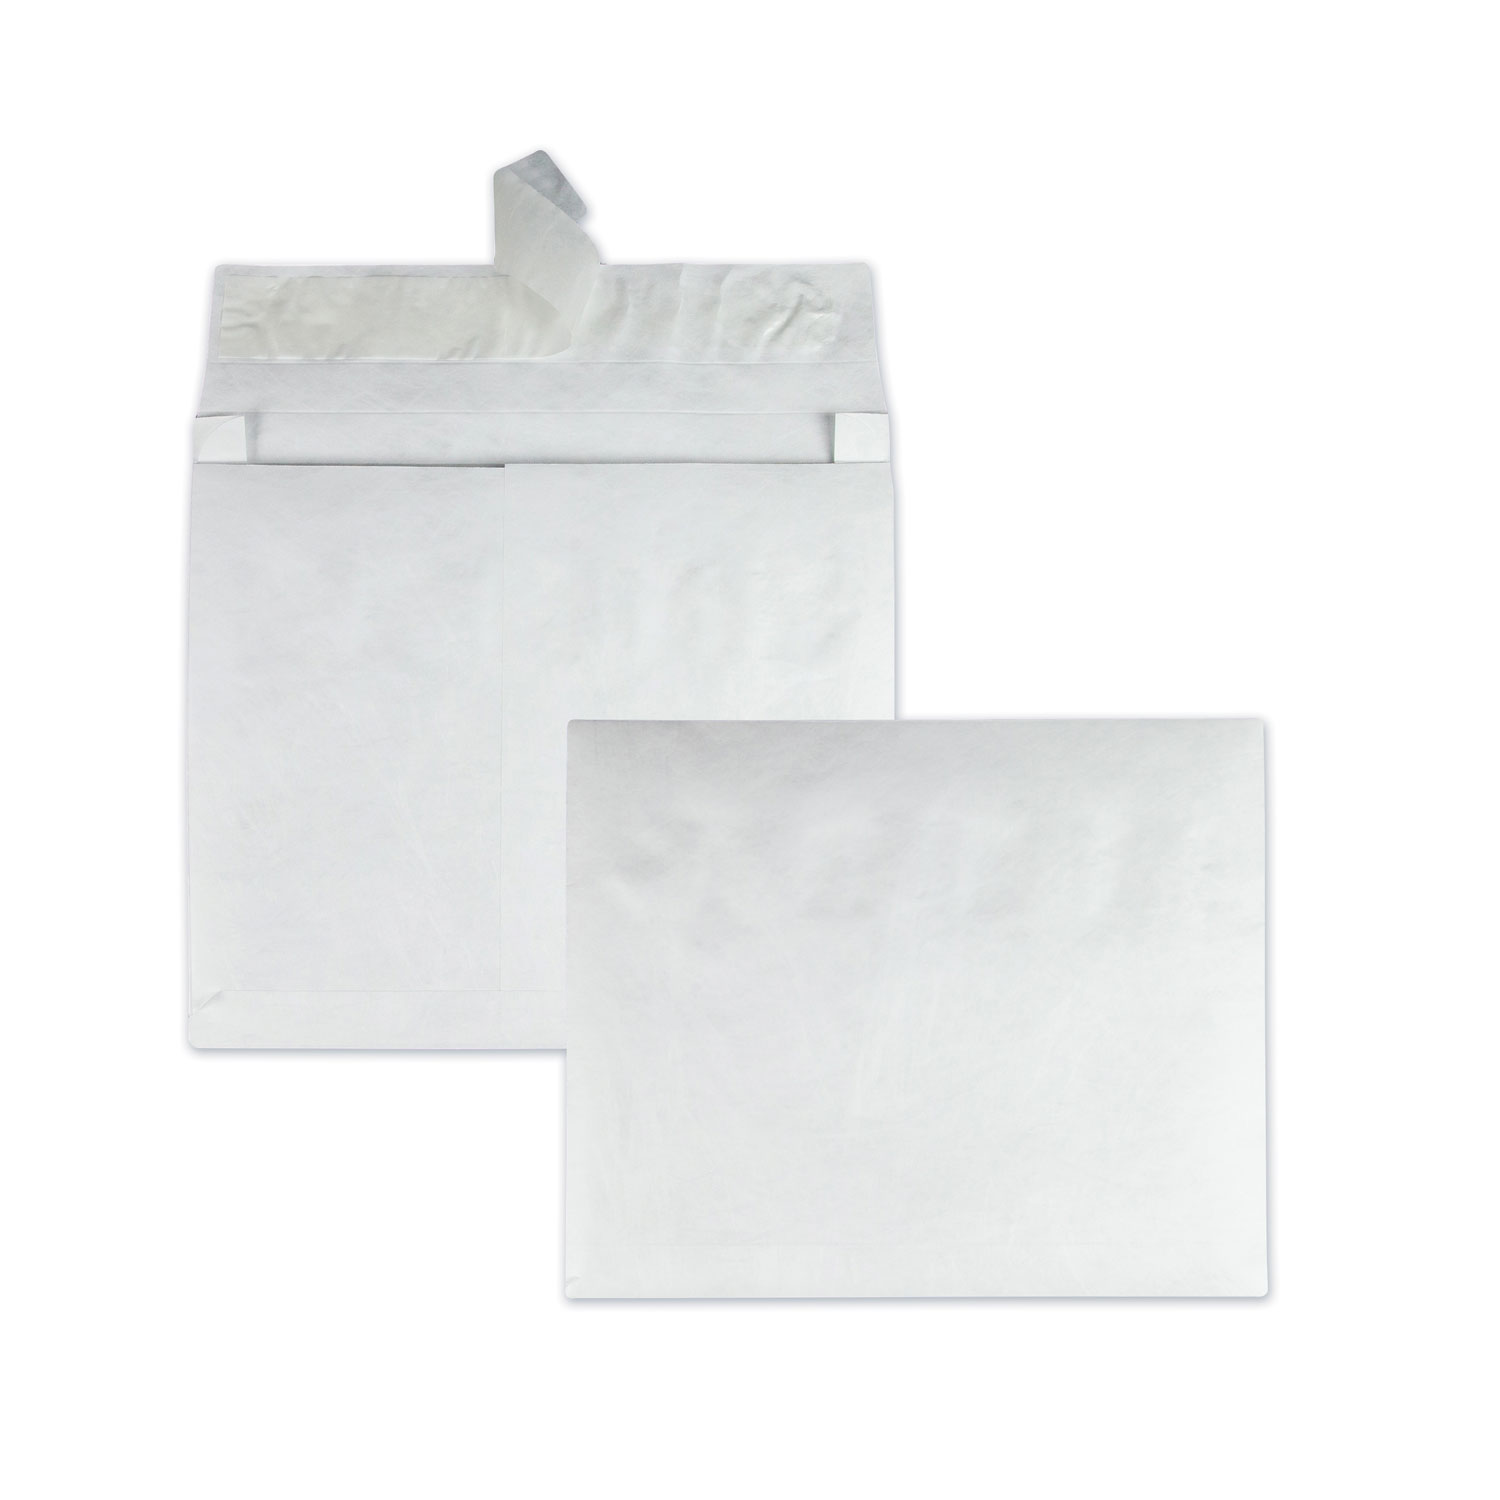 Open Side Expansion Mailers, DuPont Tyvek, #15 1/2, Commercial Flap, Redi-Strip Closure, 12 x 16, White, 100/Carton